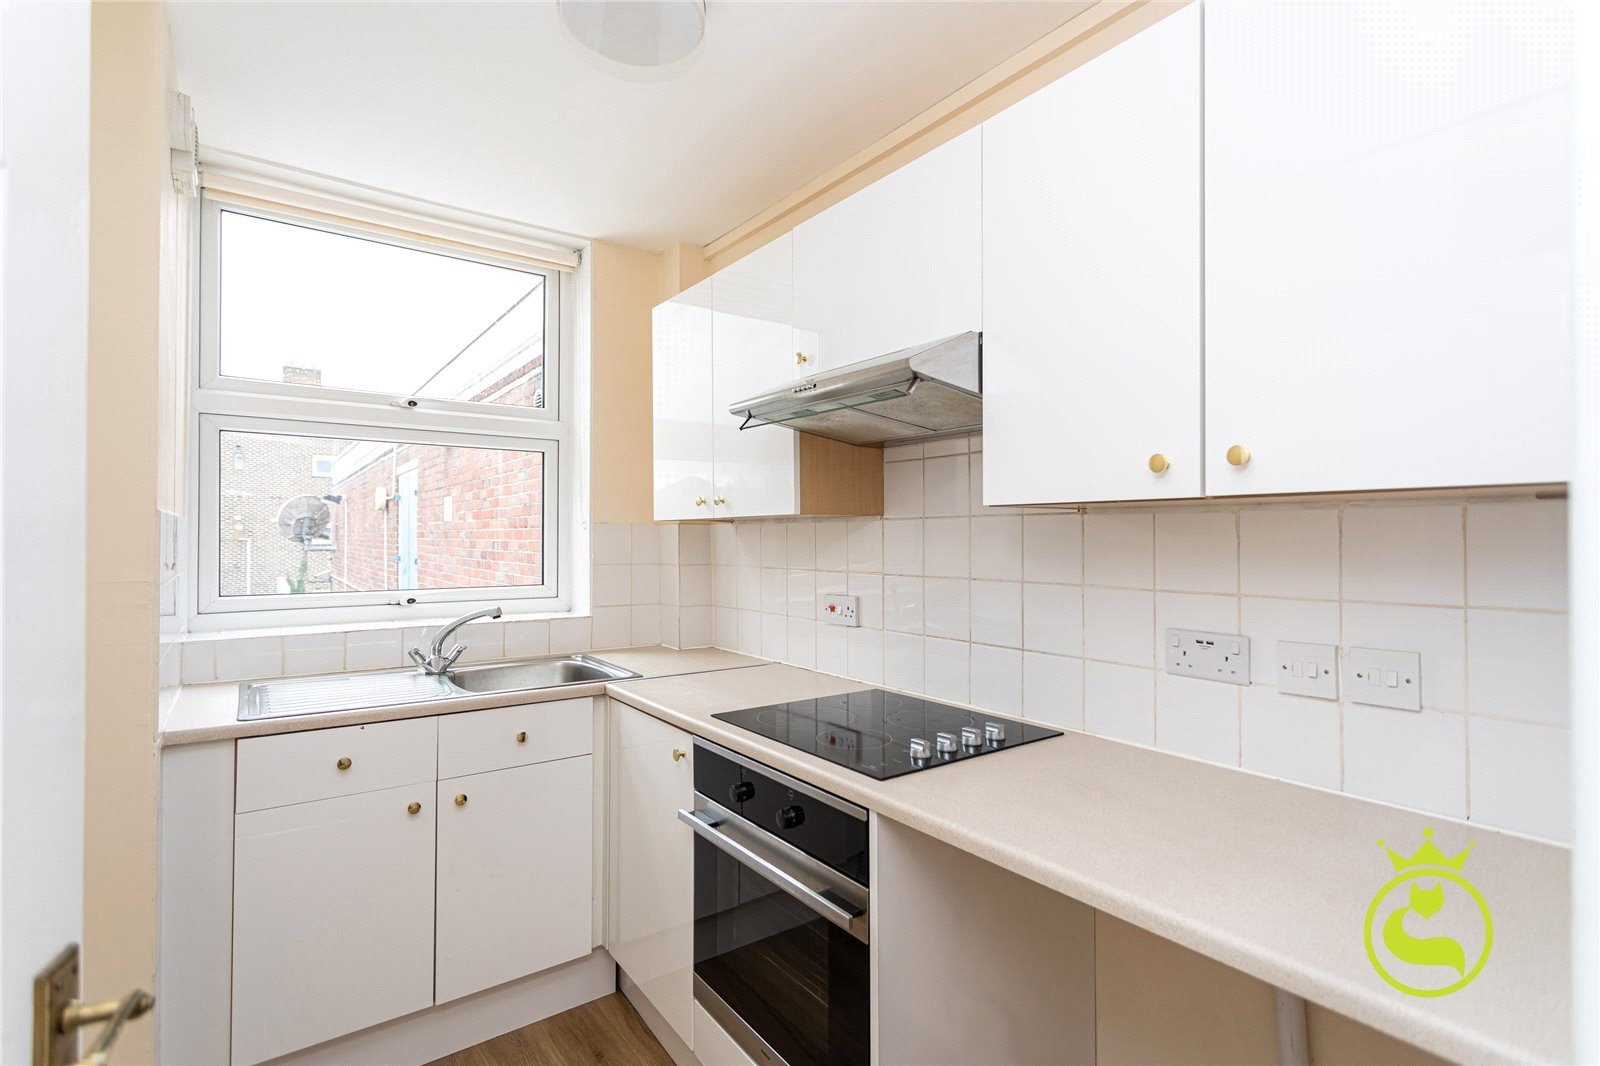 2 bed apartment to rent in Wimborne Road, Bournemouth - Property Image 1